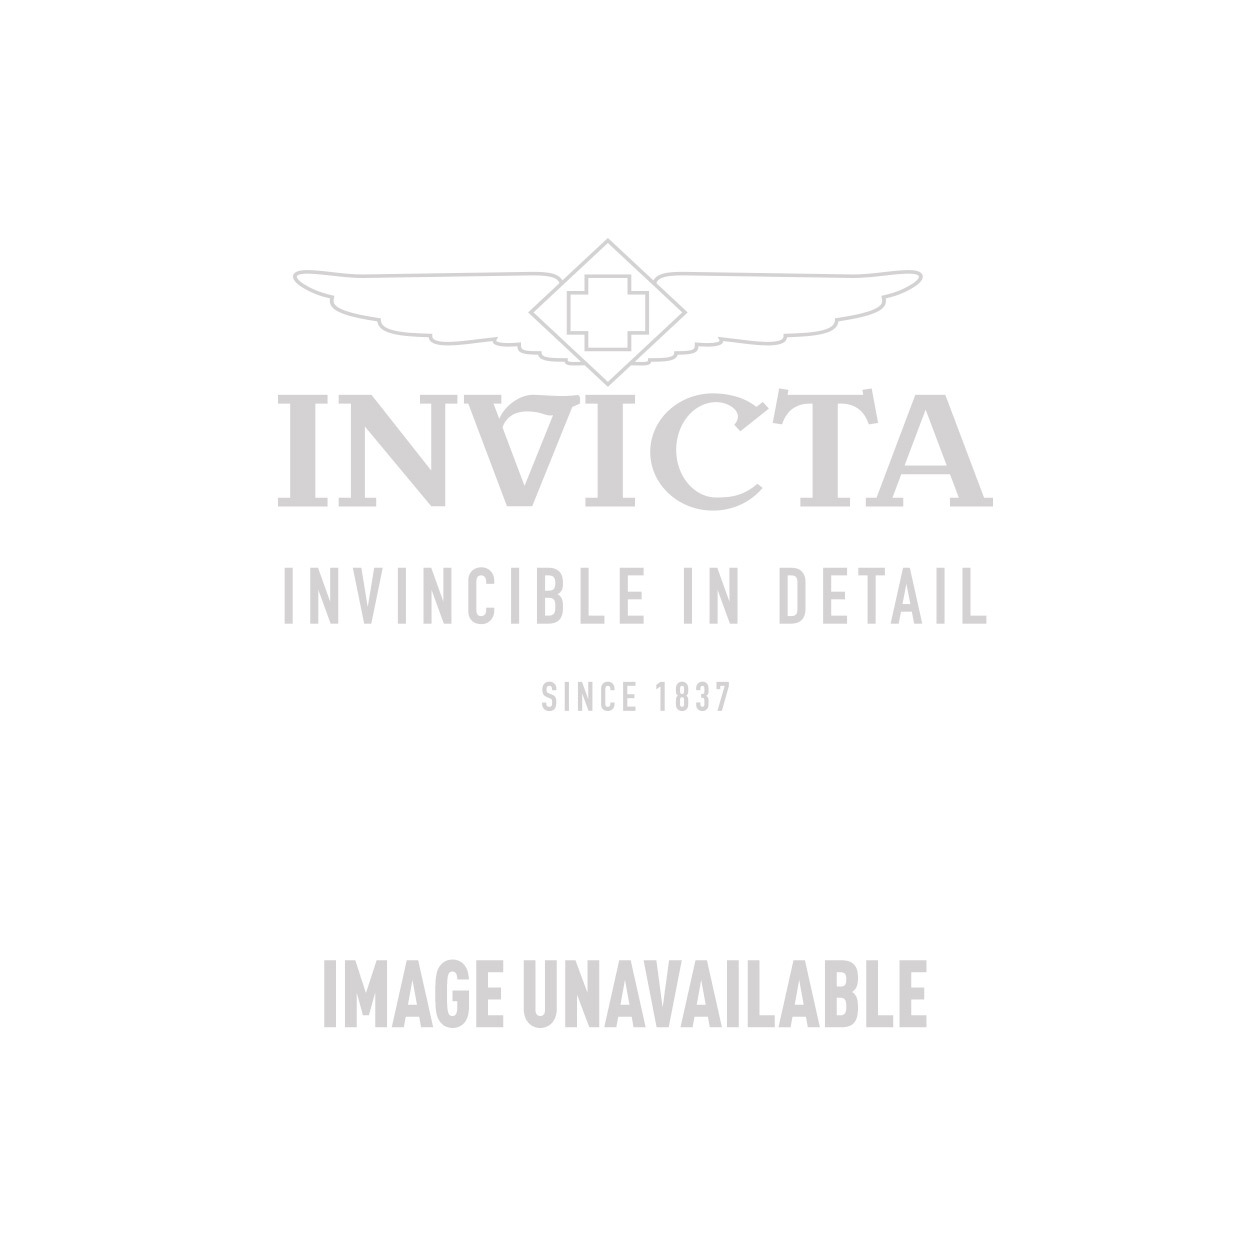 Invicta Pro Diver Swiss Movement Quartz Watch - Gold, Stainless Steel case with Steel, Gold tone Stainless Steel band - Model 17871